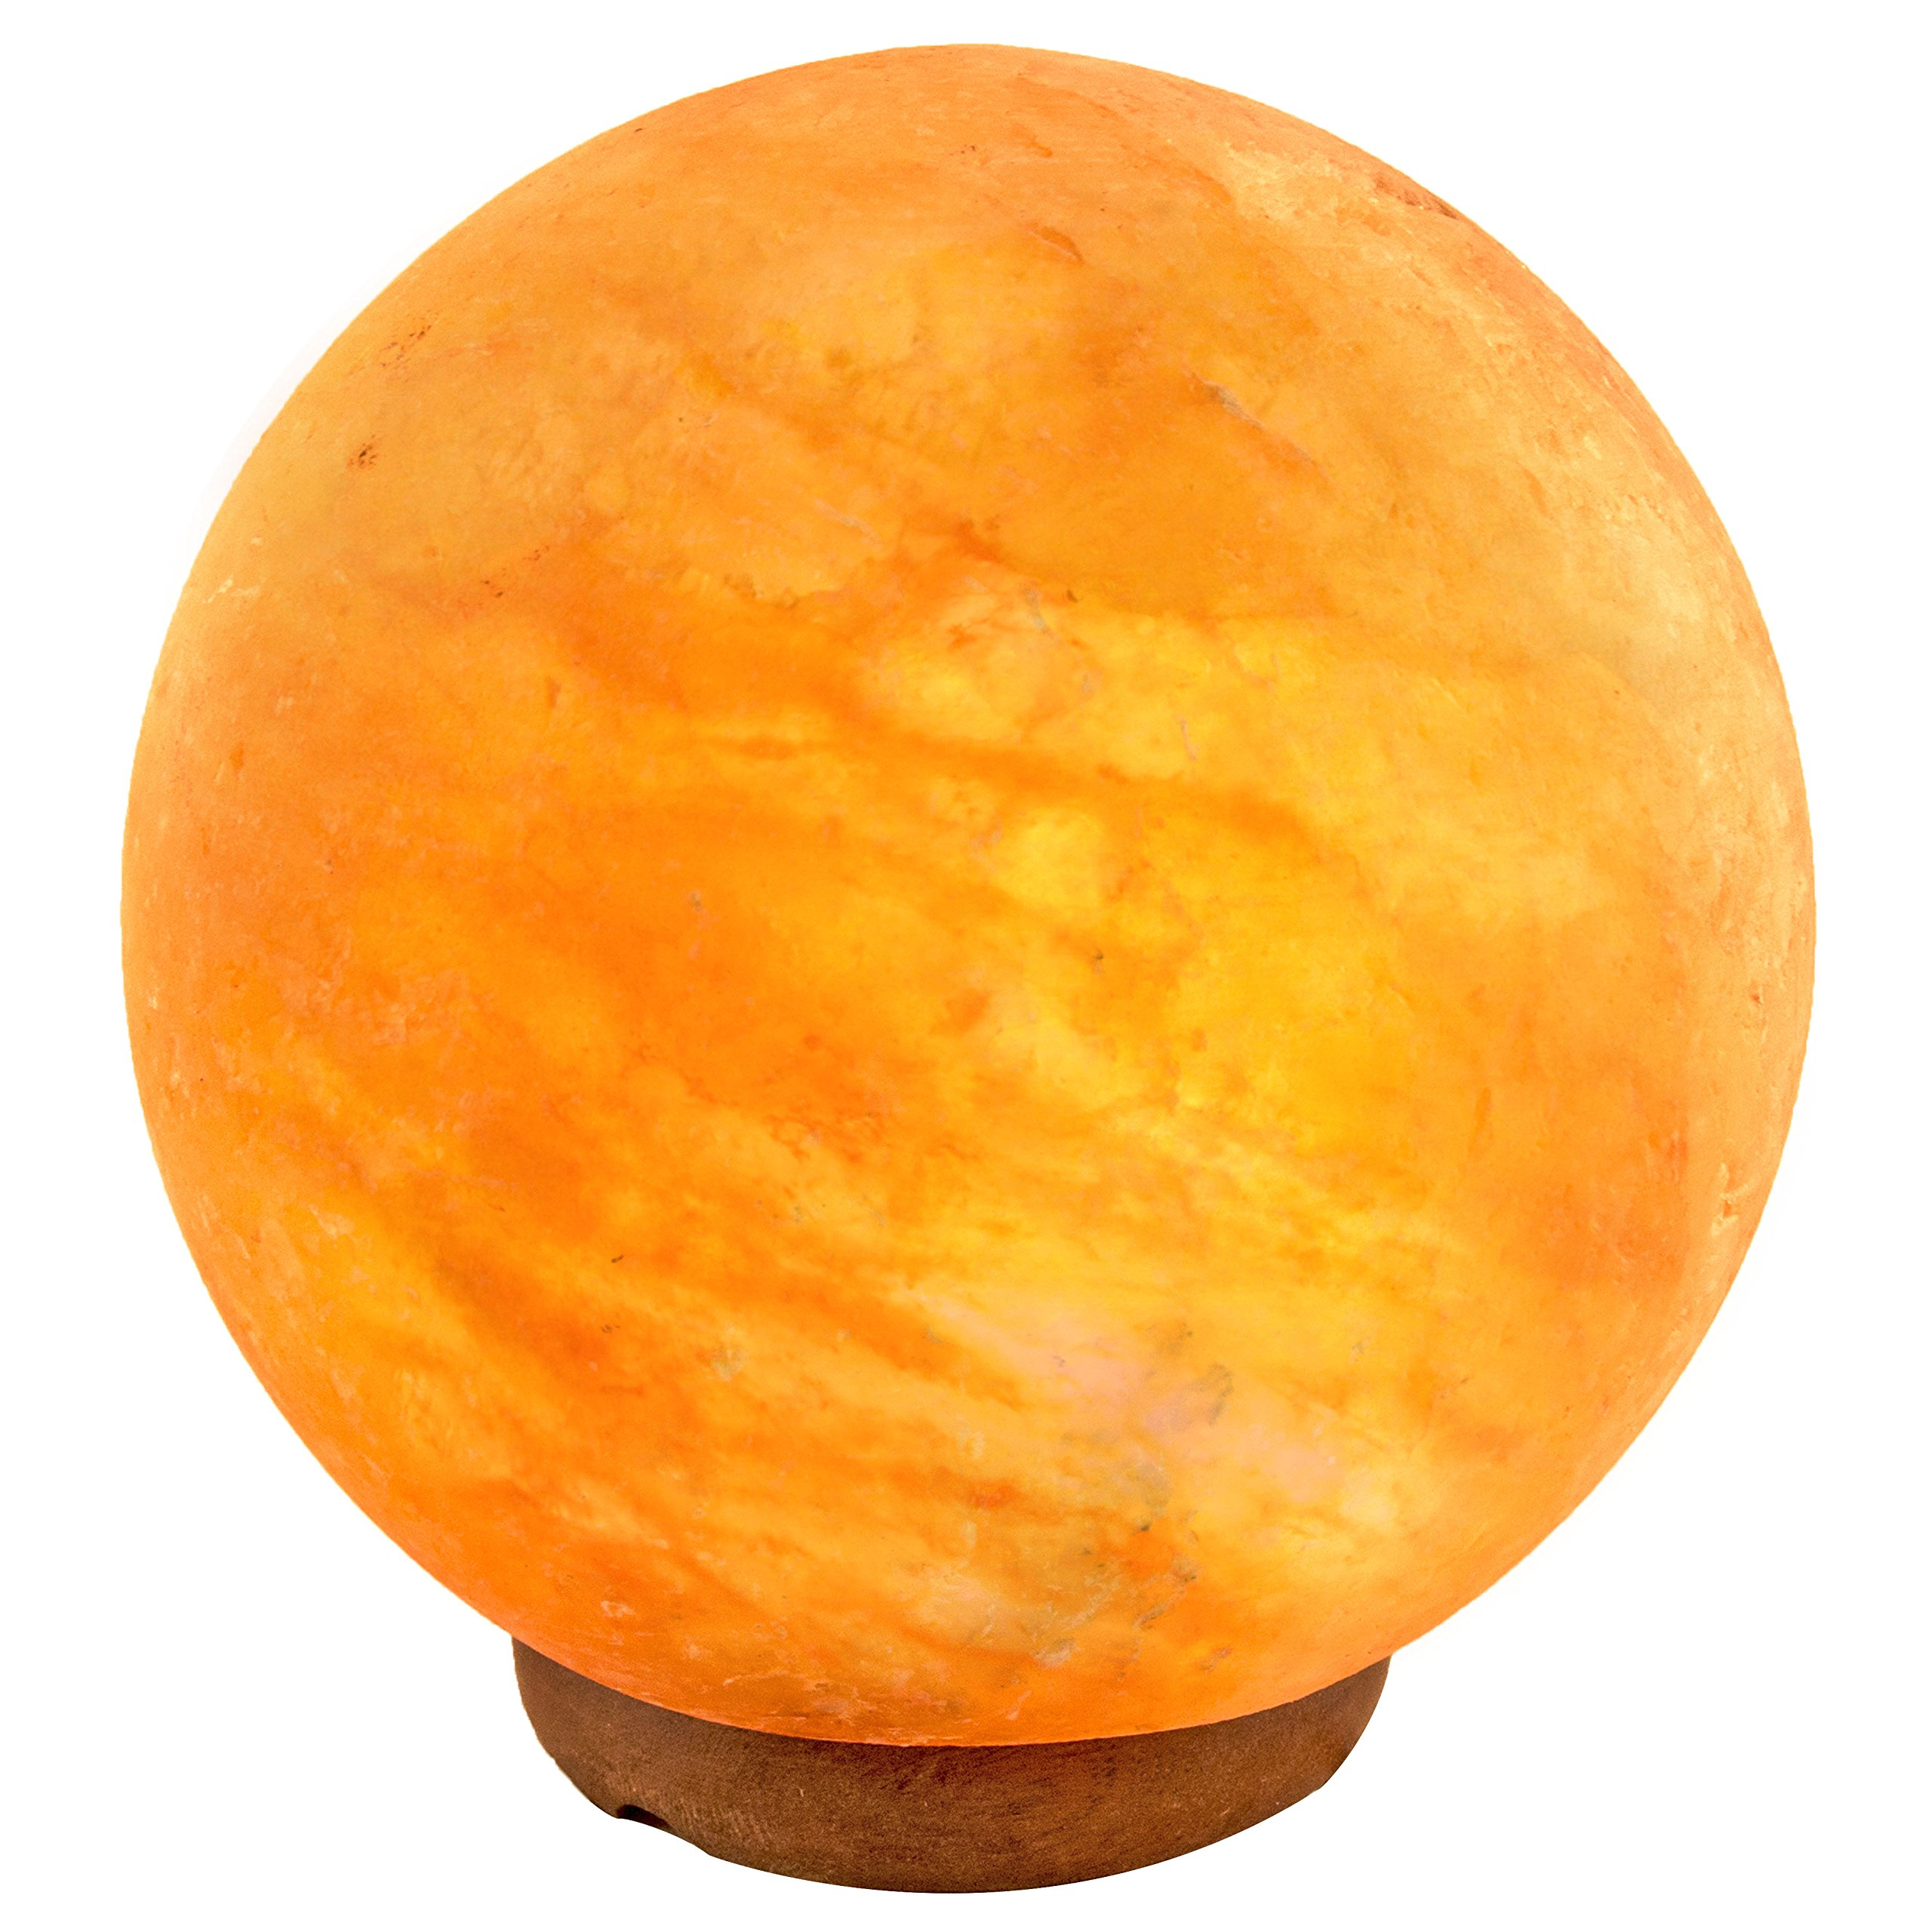 Crystal Allies Gallery: CA SLS-GLOBE-12cm Natural Himalayan Globe Salt Lamp on Wood Base with Cord, Light Bulb & Authentic Crystal Allies Info Card